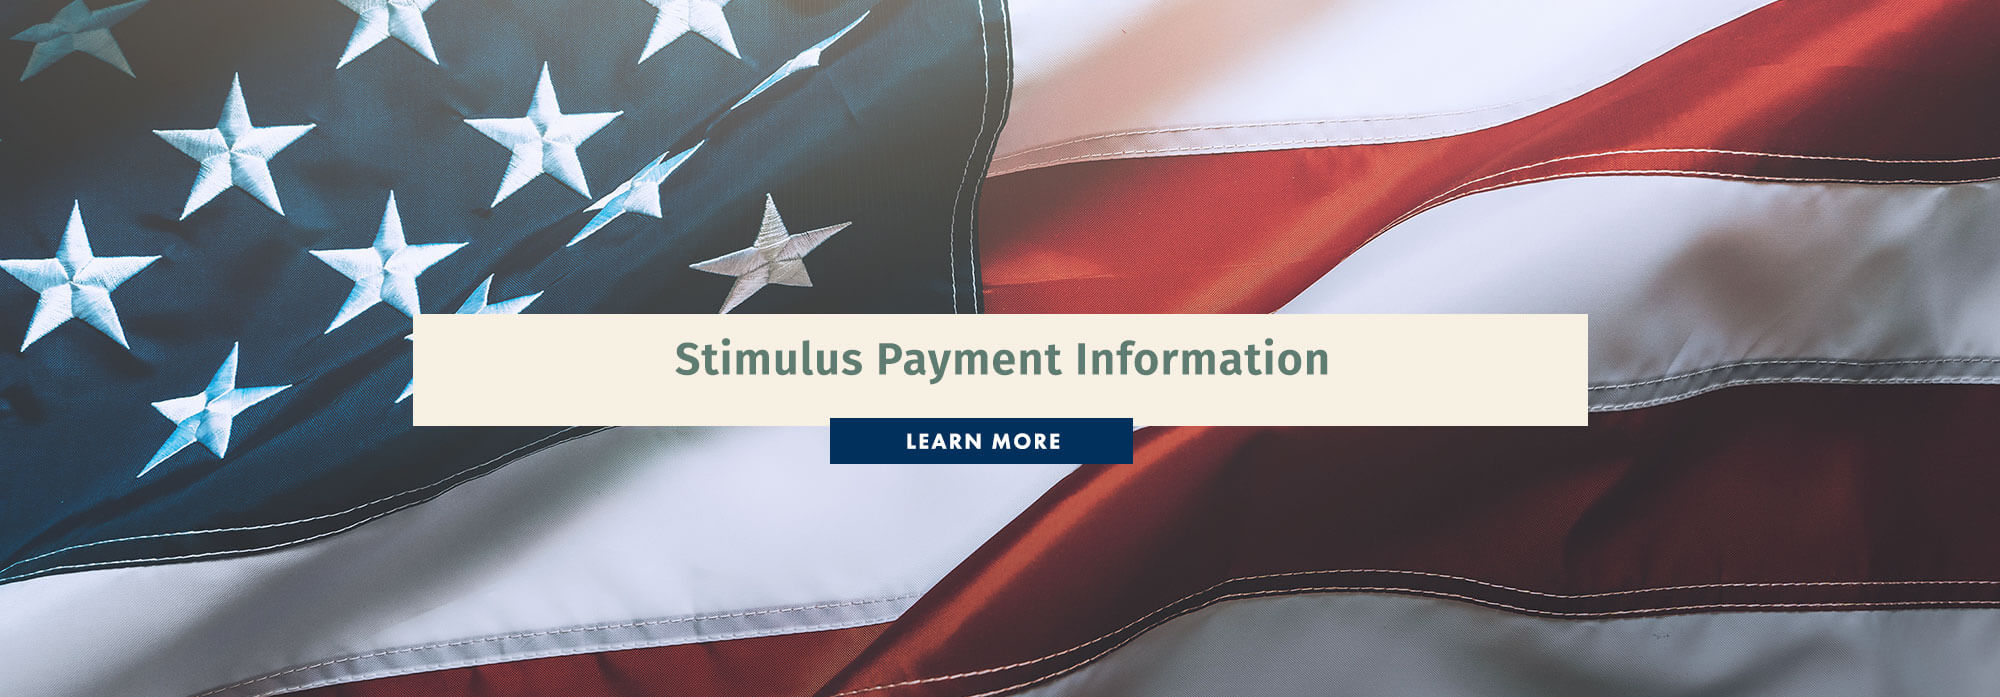 Stimulus Payment Information. Learn More